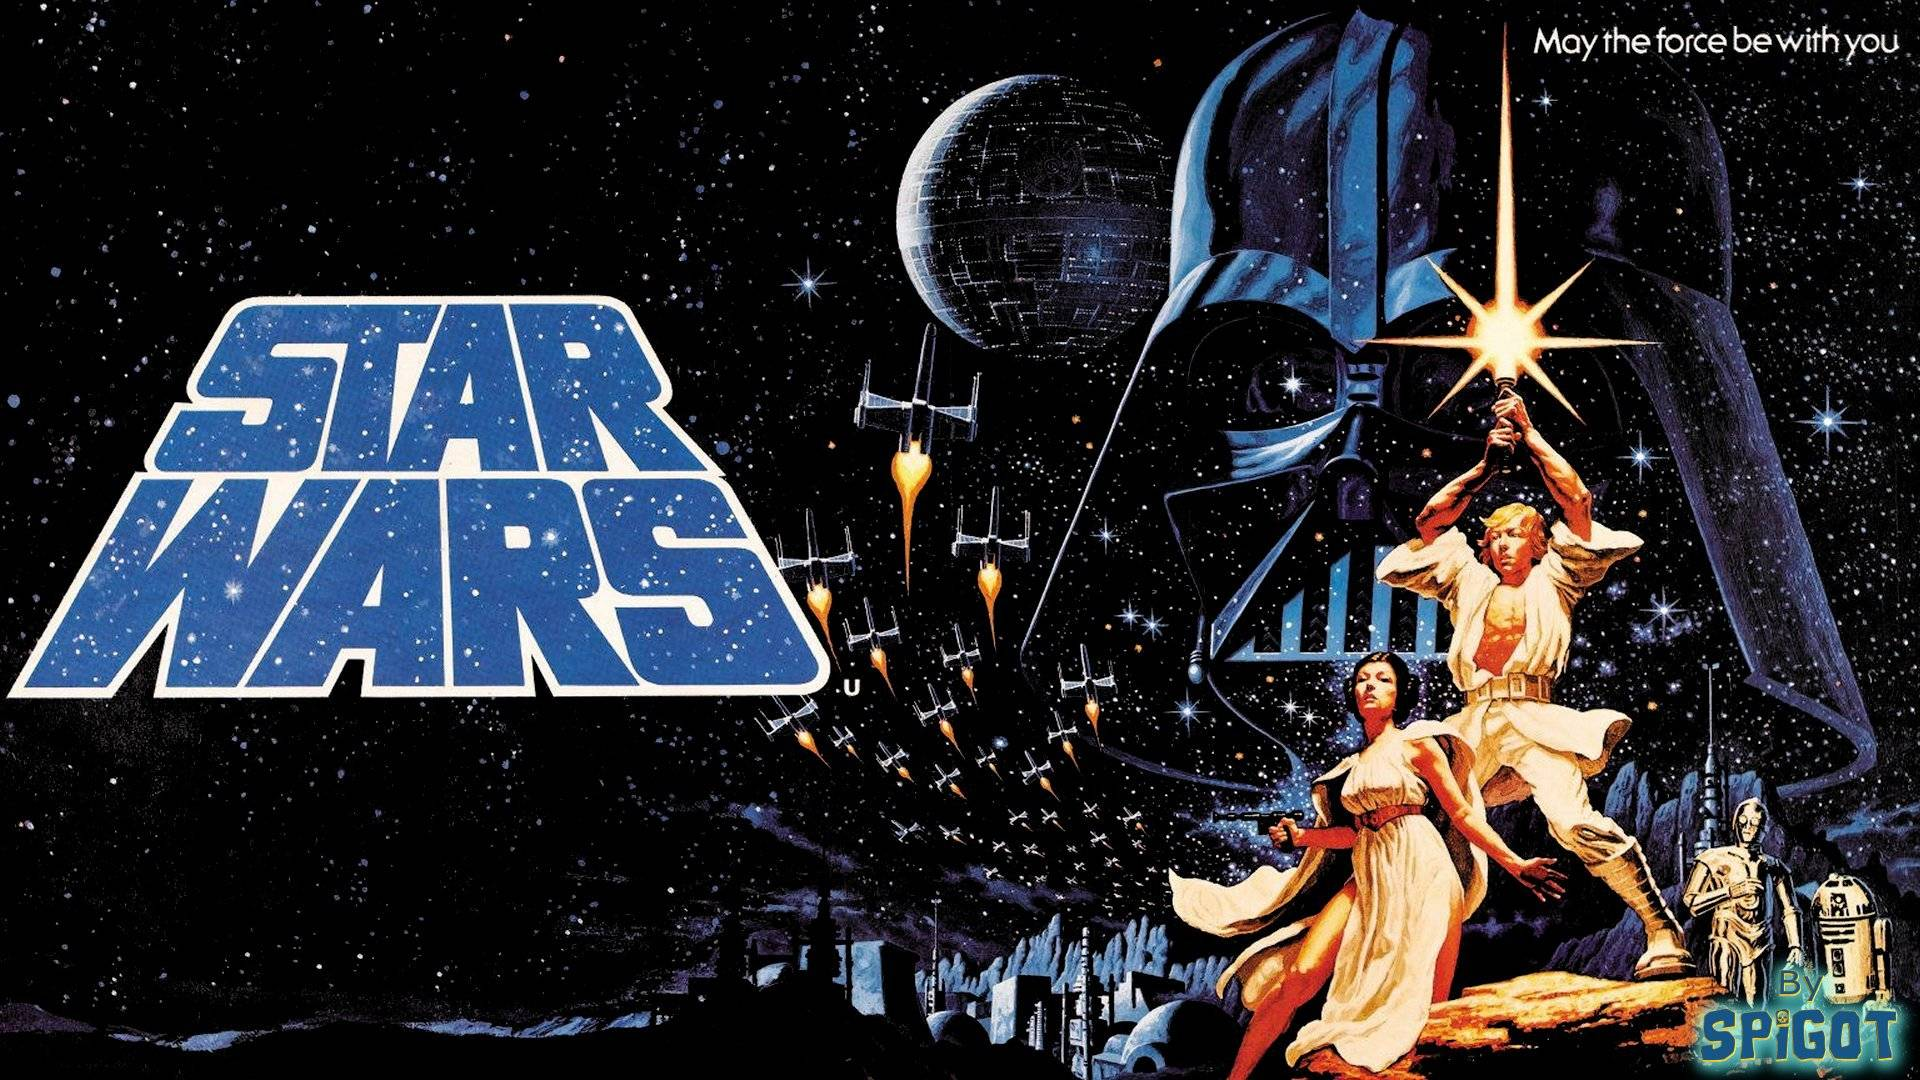 Star Wars Wallpaper Home | Wide Wallpapers